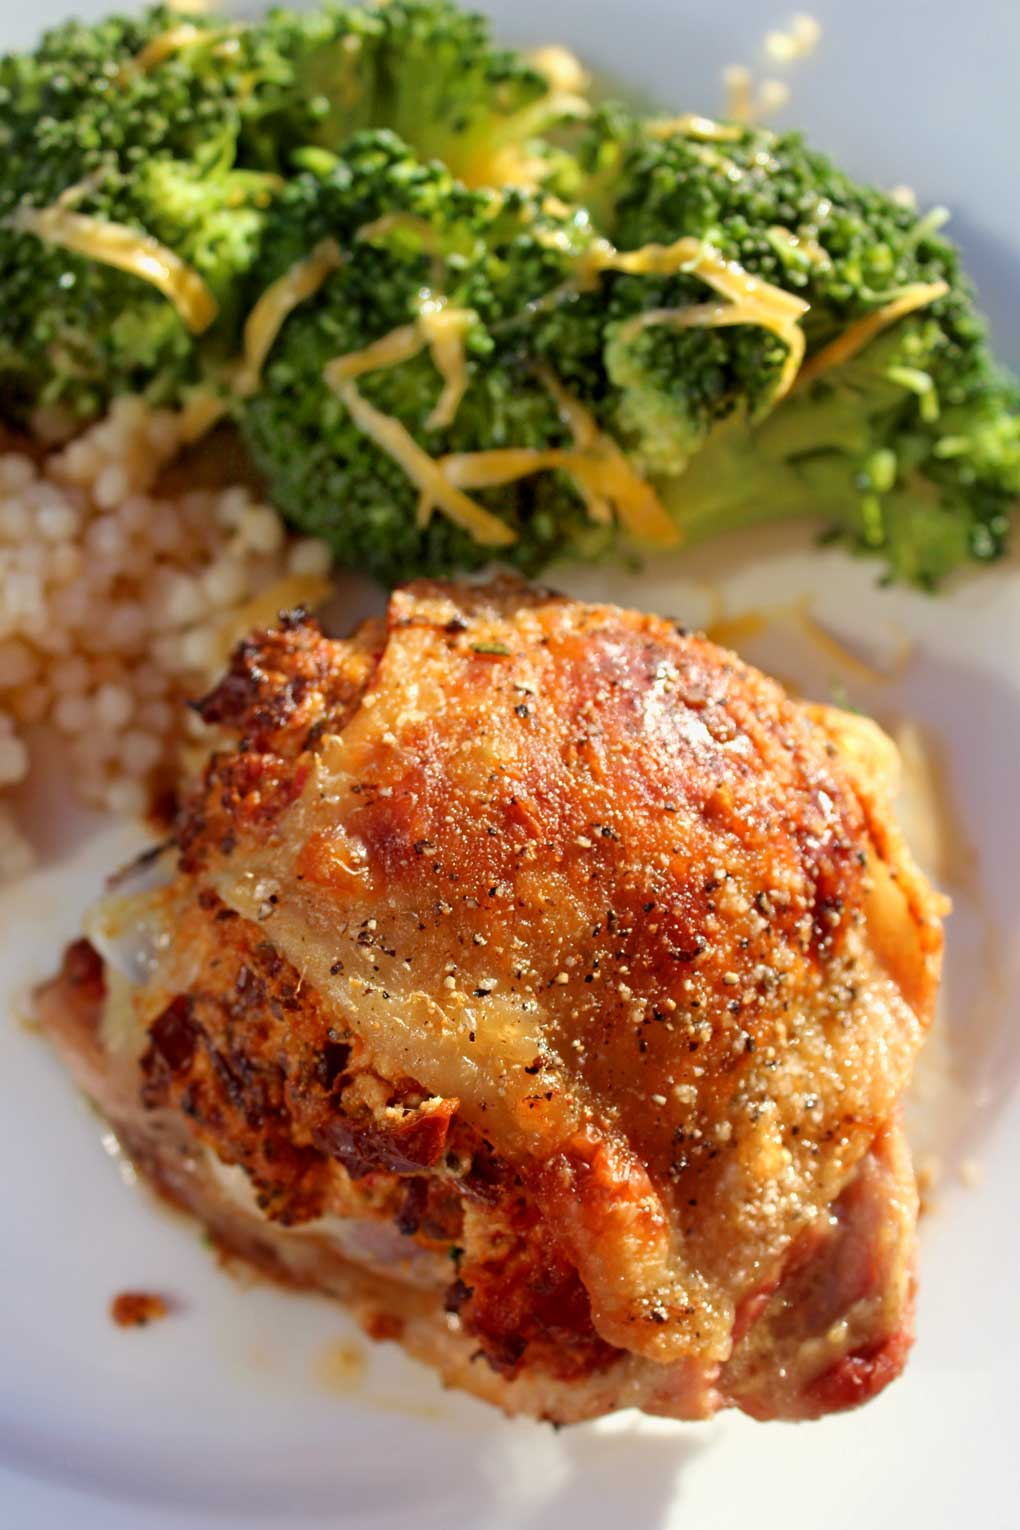 Sun-Dried Tomato Goat Cheese Stuffed Chicken: tender juicy chicken with tangy seasoned goat cheese and sun-dried tomatoes stuffed under crispy golden skin.